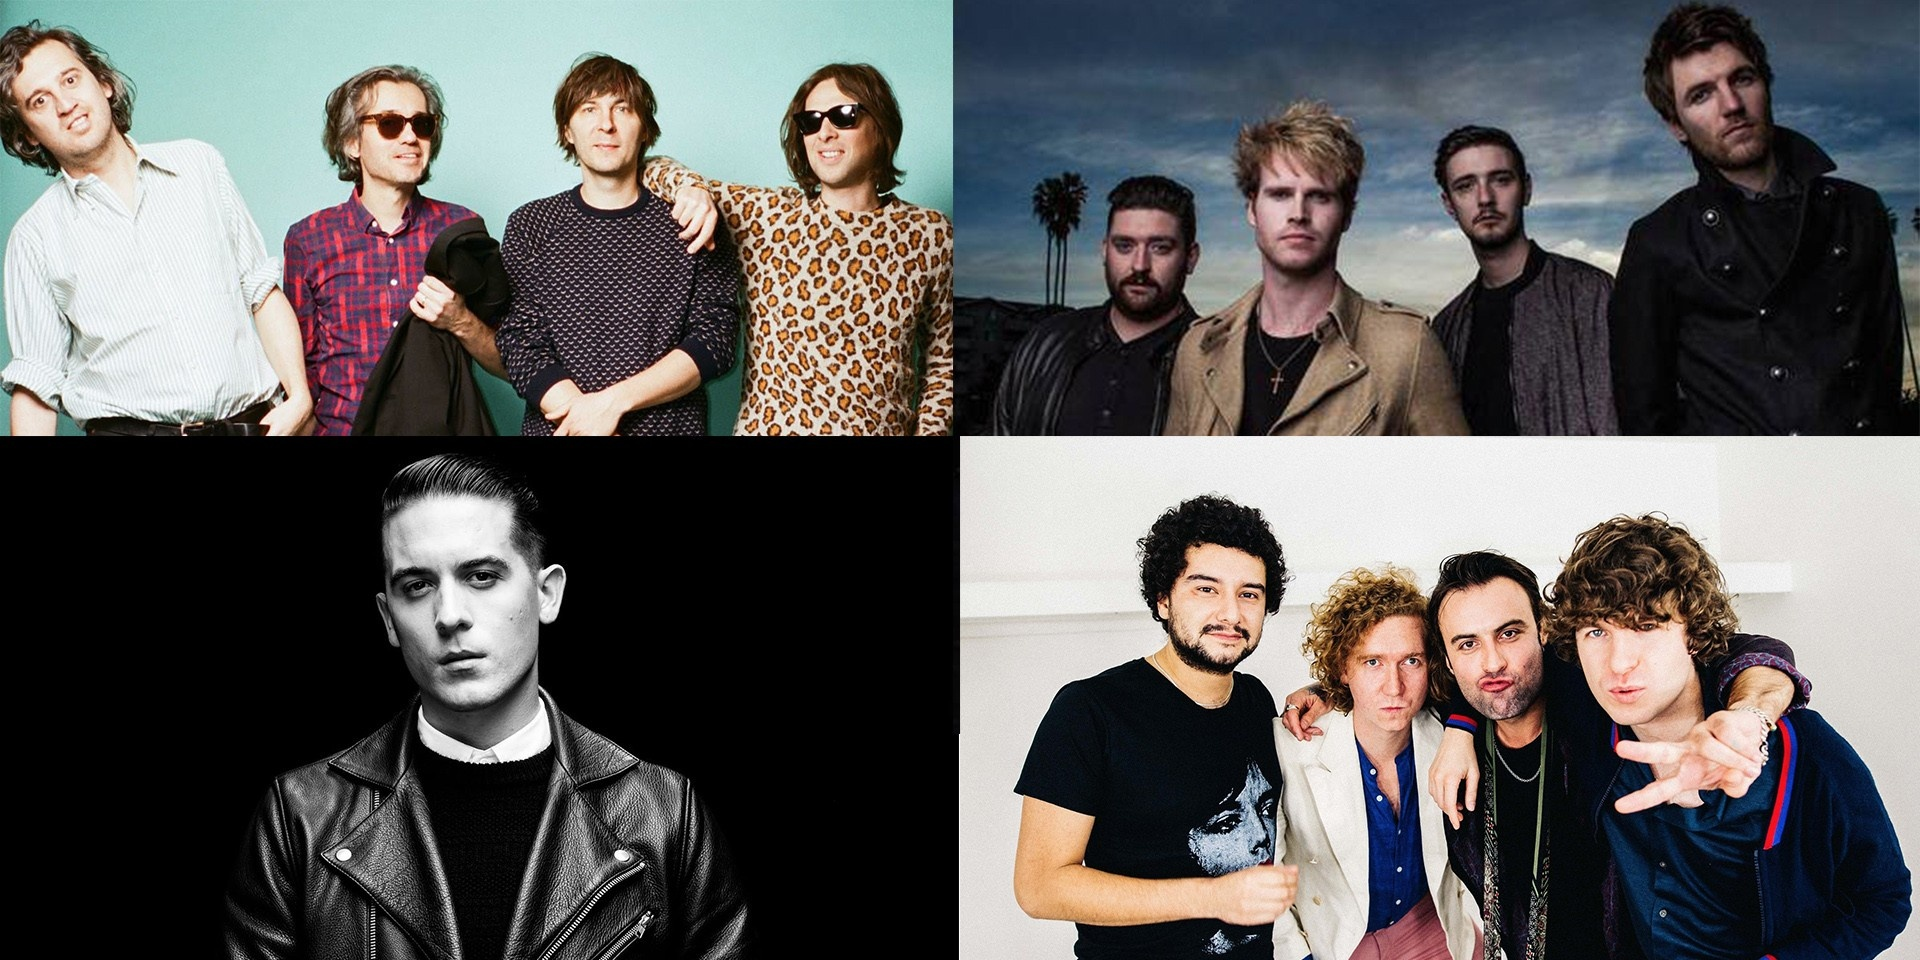 Good Vibes Festival 2017 is back with Phoenix, Kodaline, G-Eazy and The Kooks